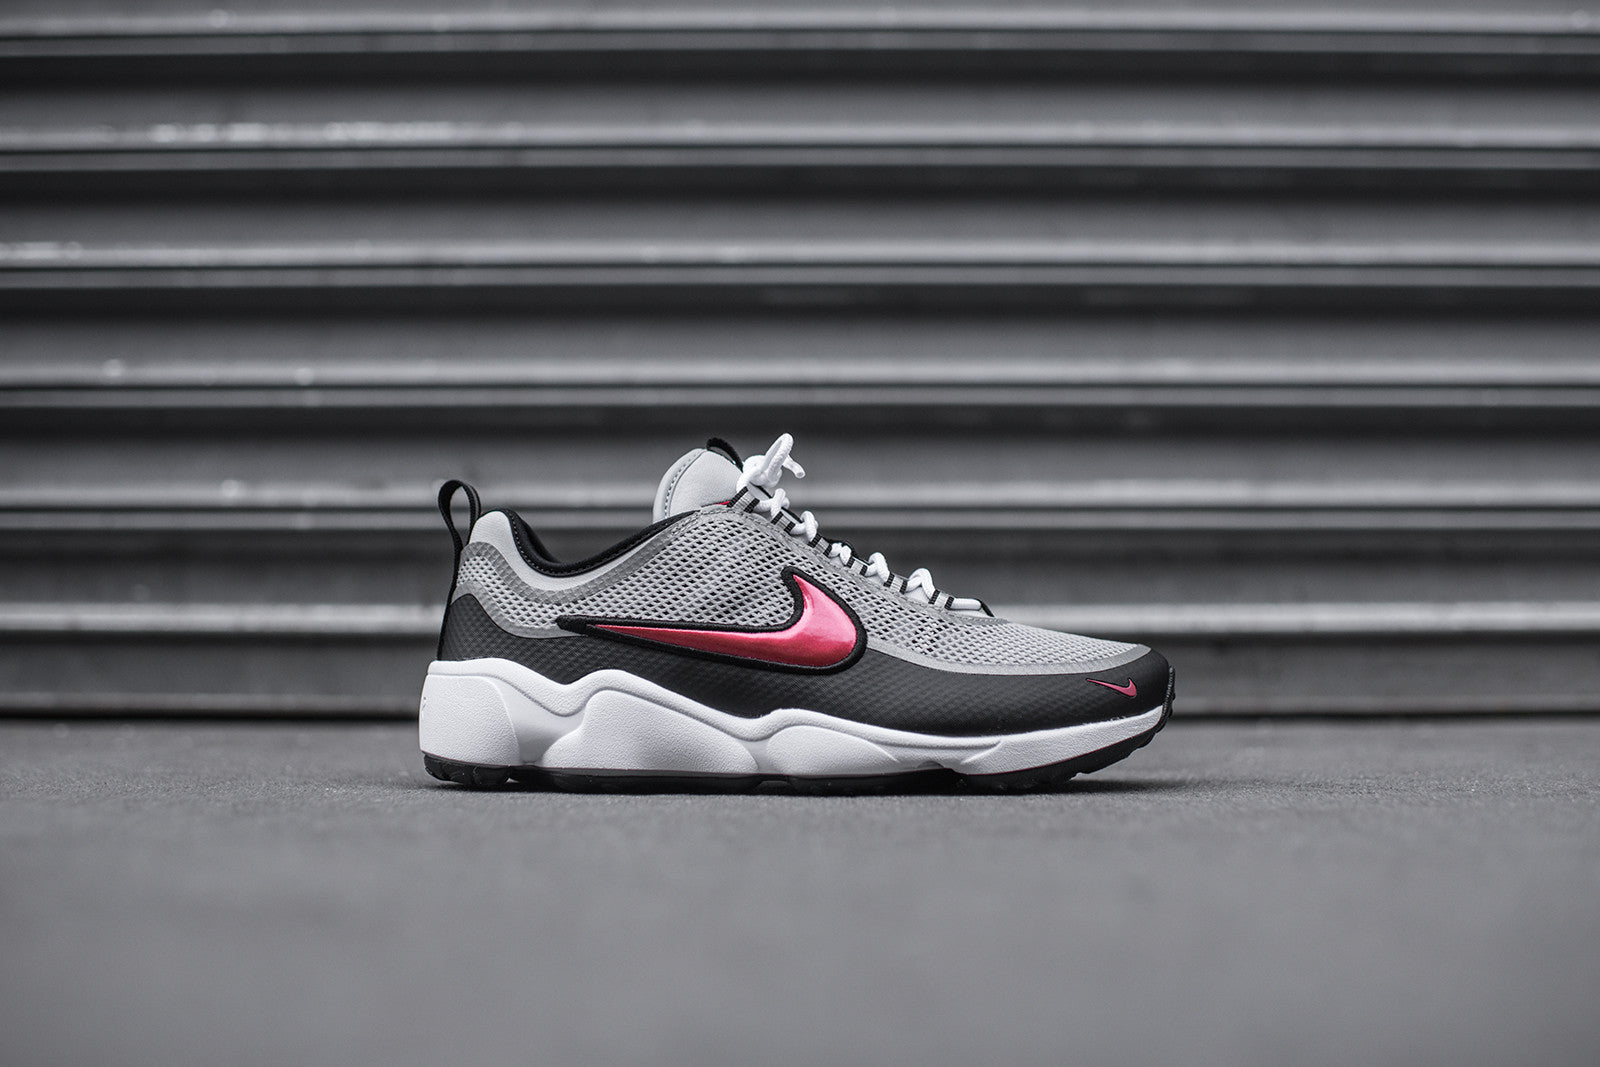 Nike Air Zoom Spiridon Ultra - Silver